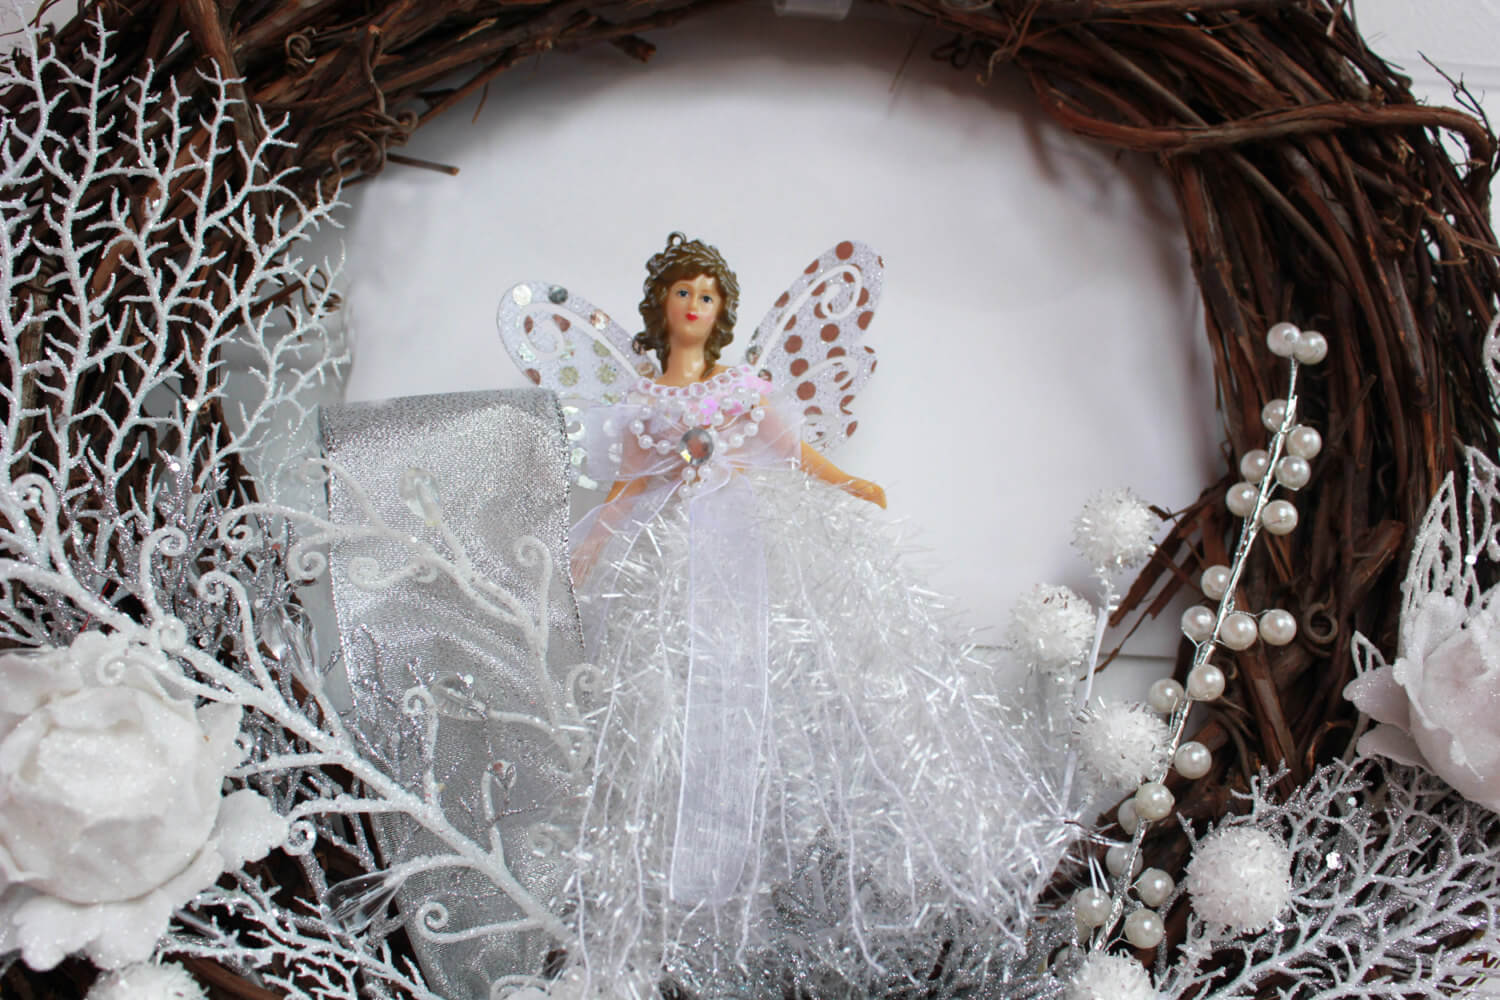 Christmas wreath with a white angel